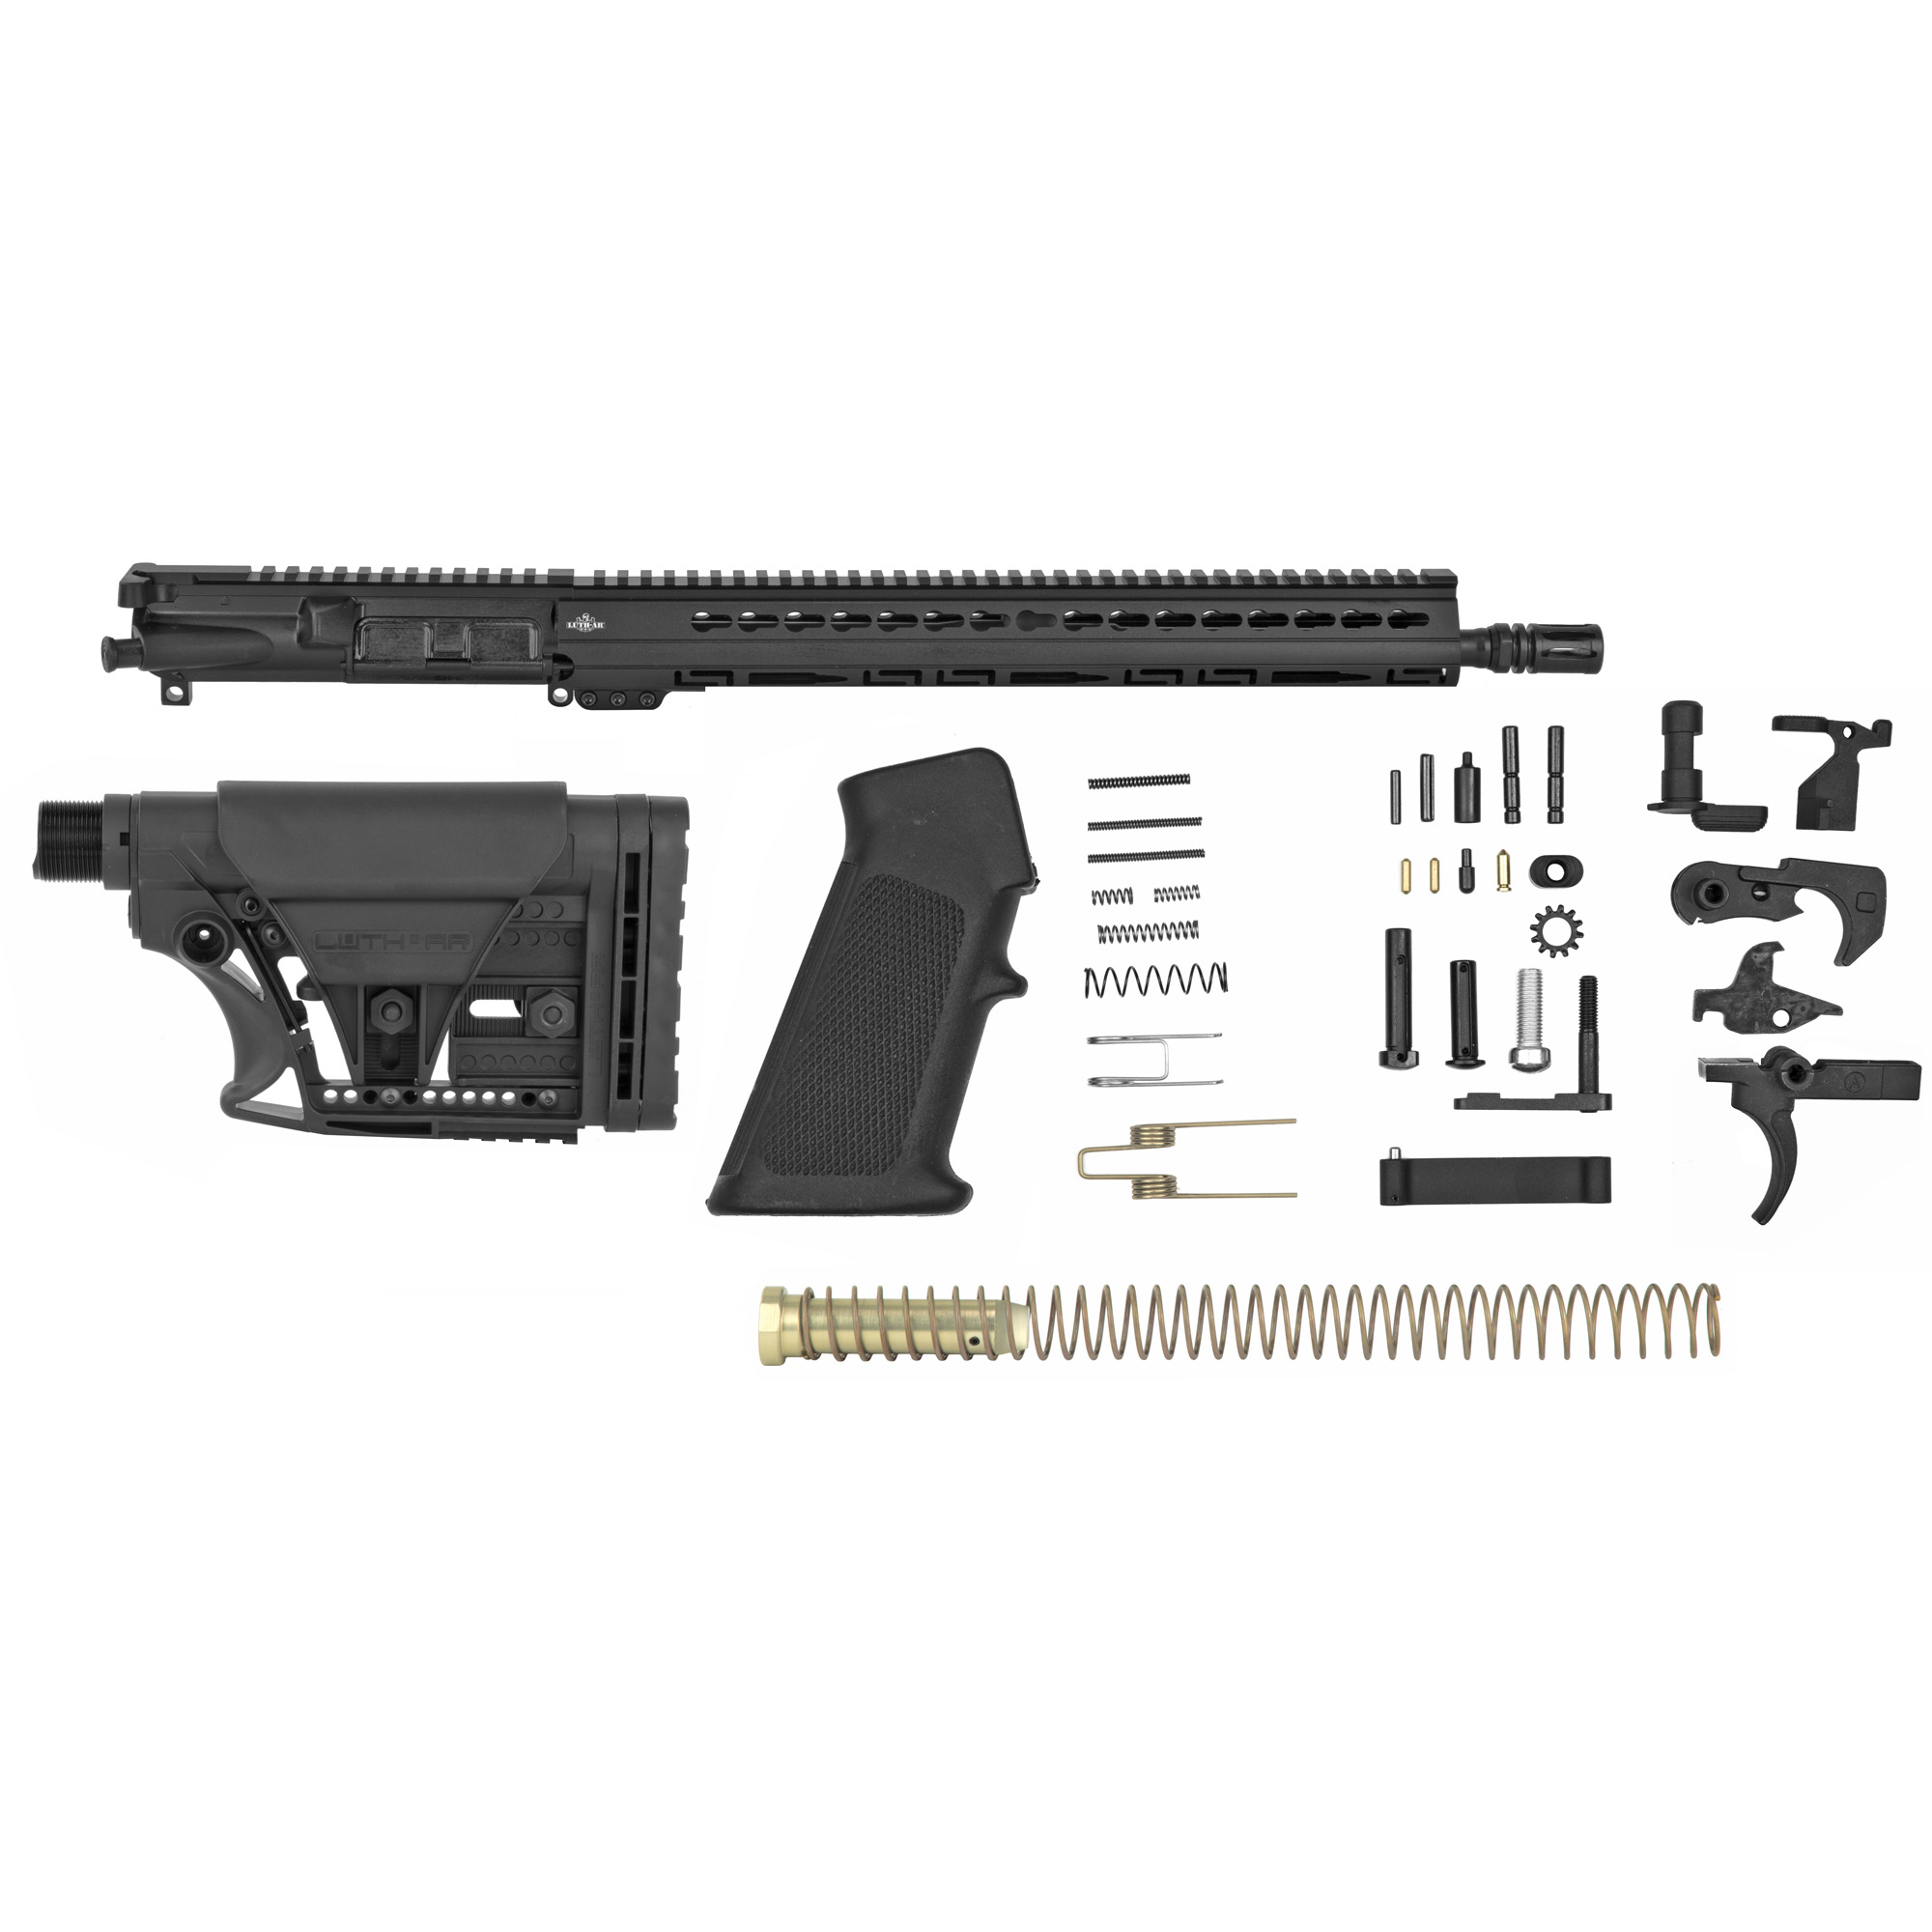 "This kit contains everything you need to build your own AR except the stripped lower receiver. The Kit Contains: Fully assembled 16"" Lightweight 5.56 mm Barrel Upper with 15"" Keymod Palm Handguard(R)"" MBA-3 Adjustable Carbine Buttstock Assembly (Black)"" Complete Lower Parts Kit"